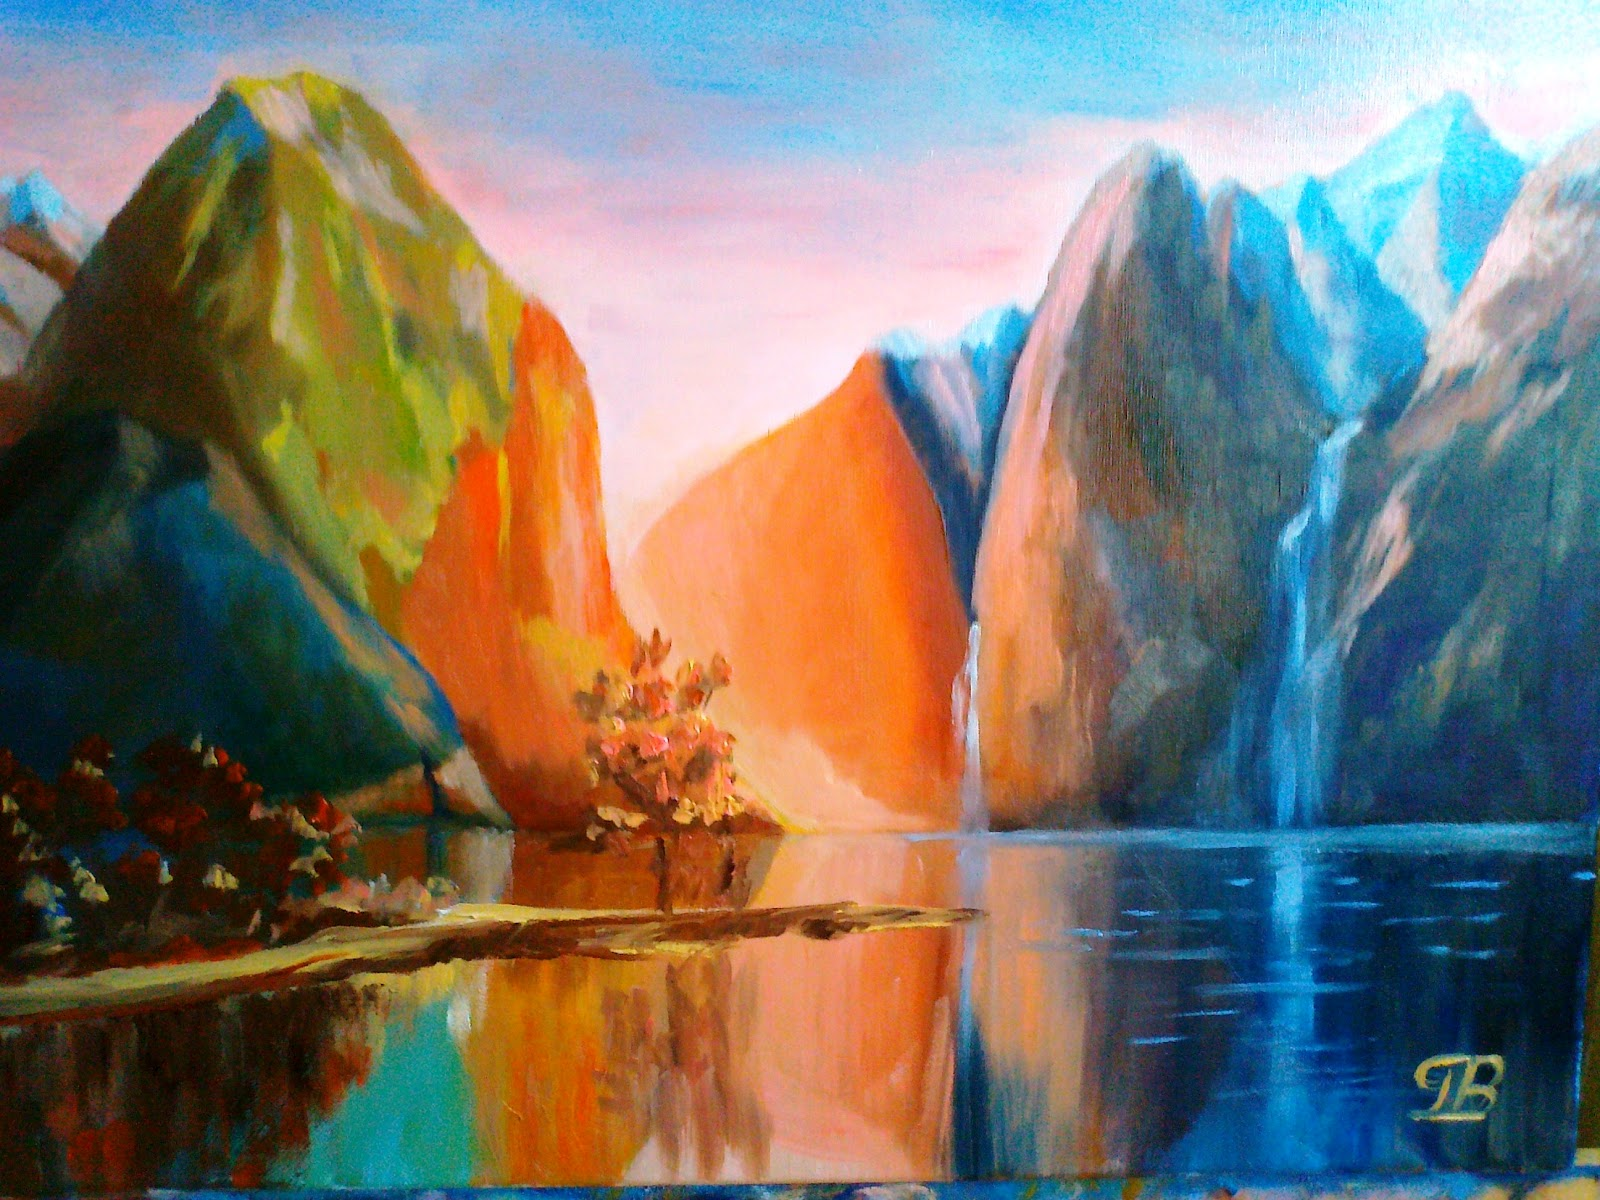 art--george: Sanctuary = Fiordland National Park - New Zealand